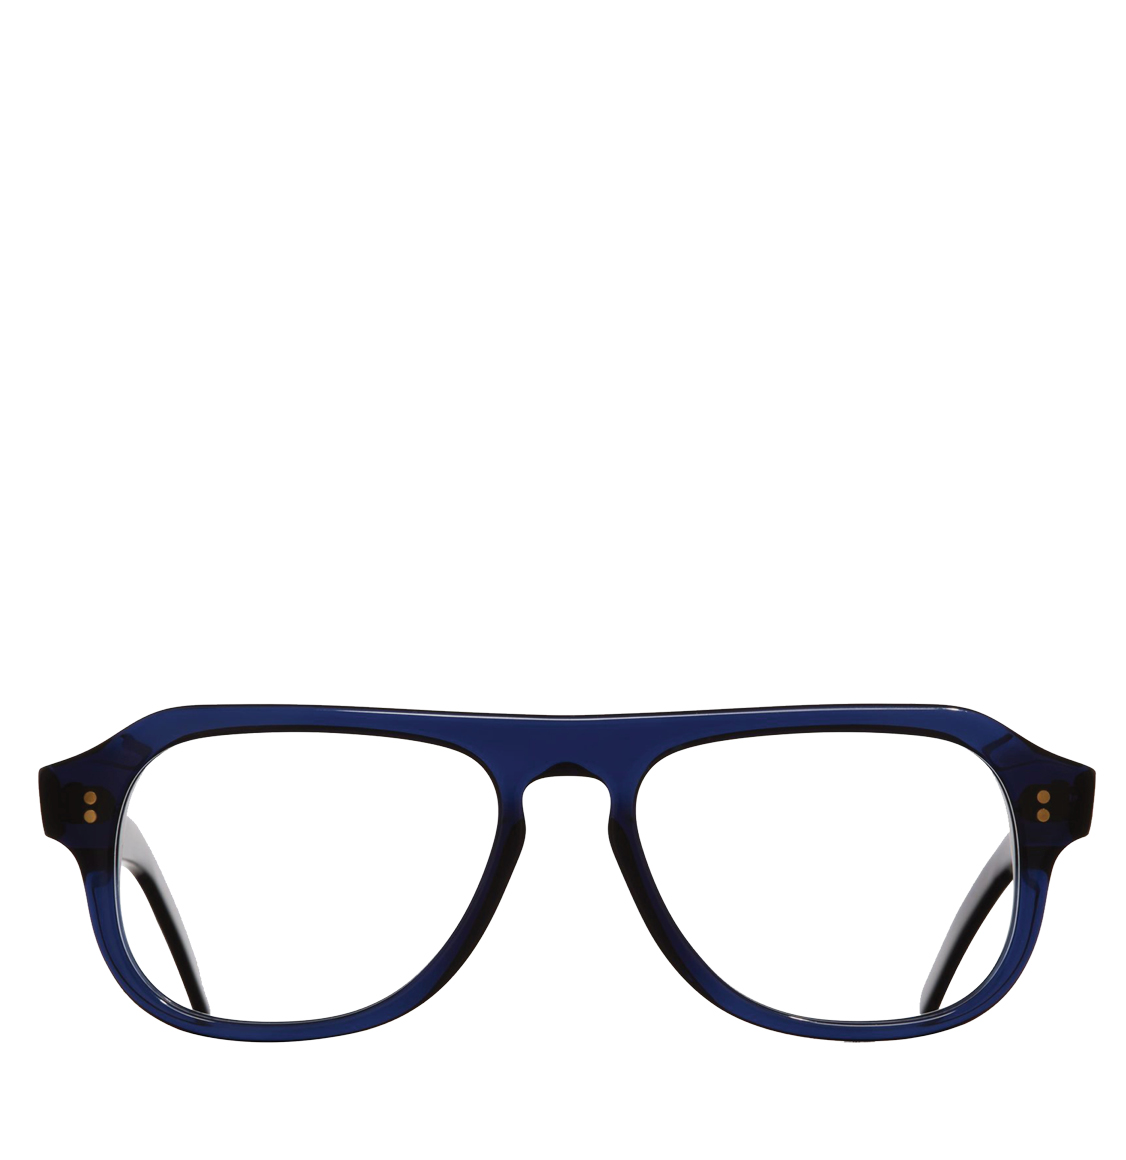 Cutler and Gross 0822 Navy Blue Optical Glasses